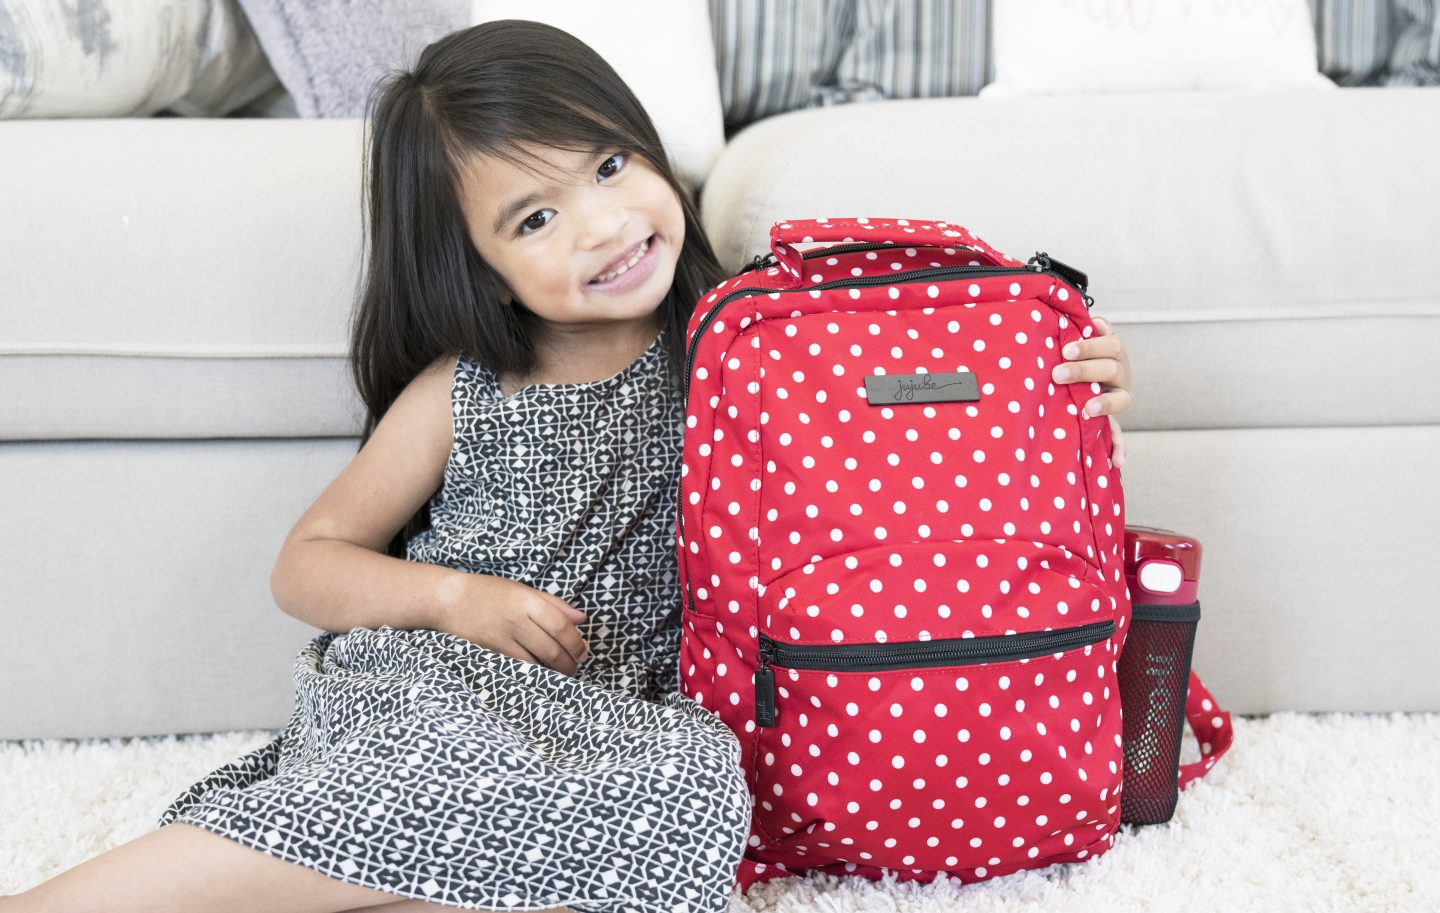 Jujube Be Packed In Black Ruby Packing Tips